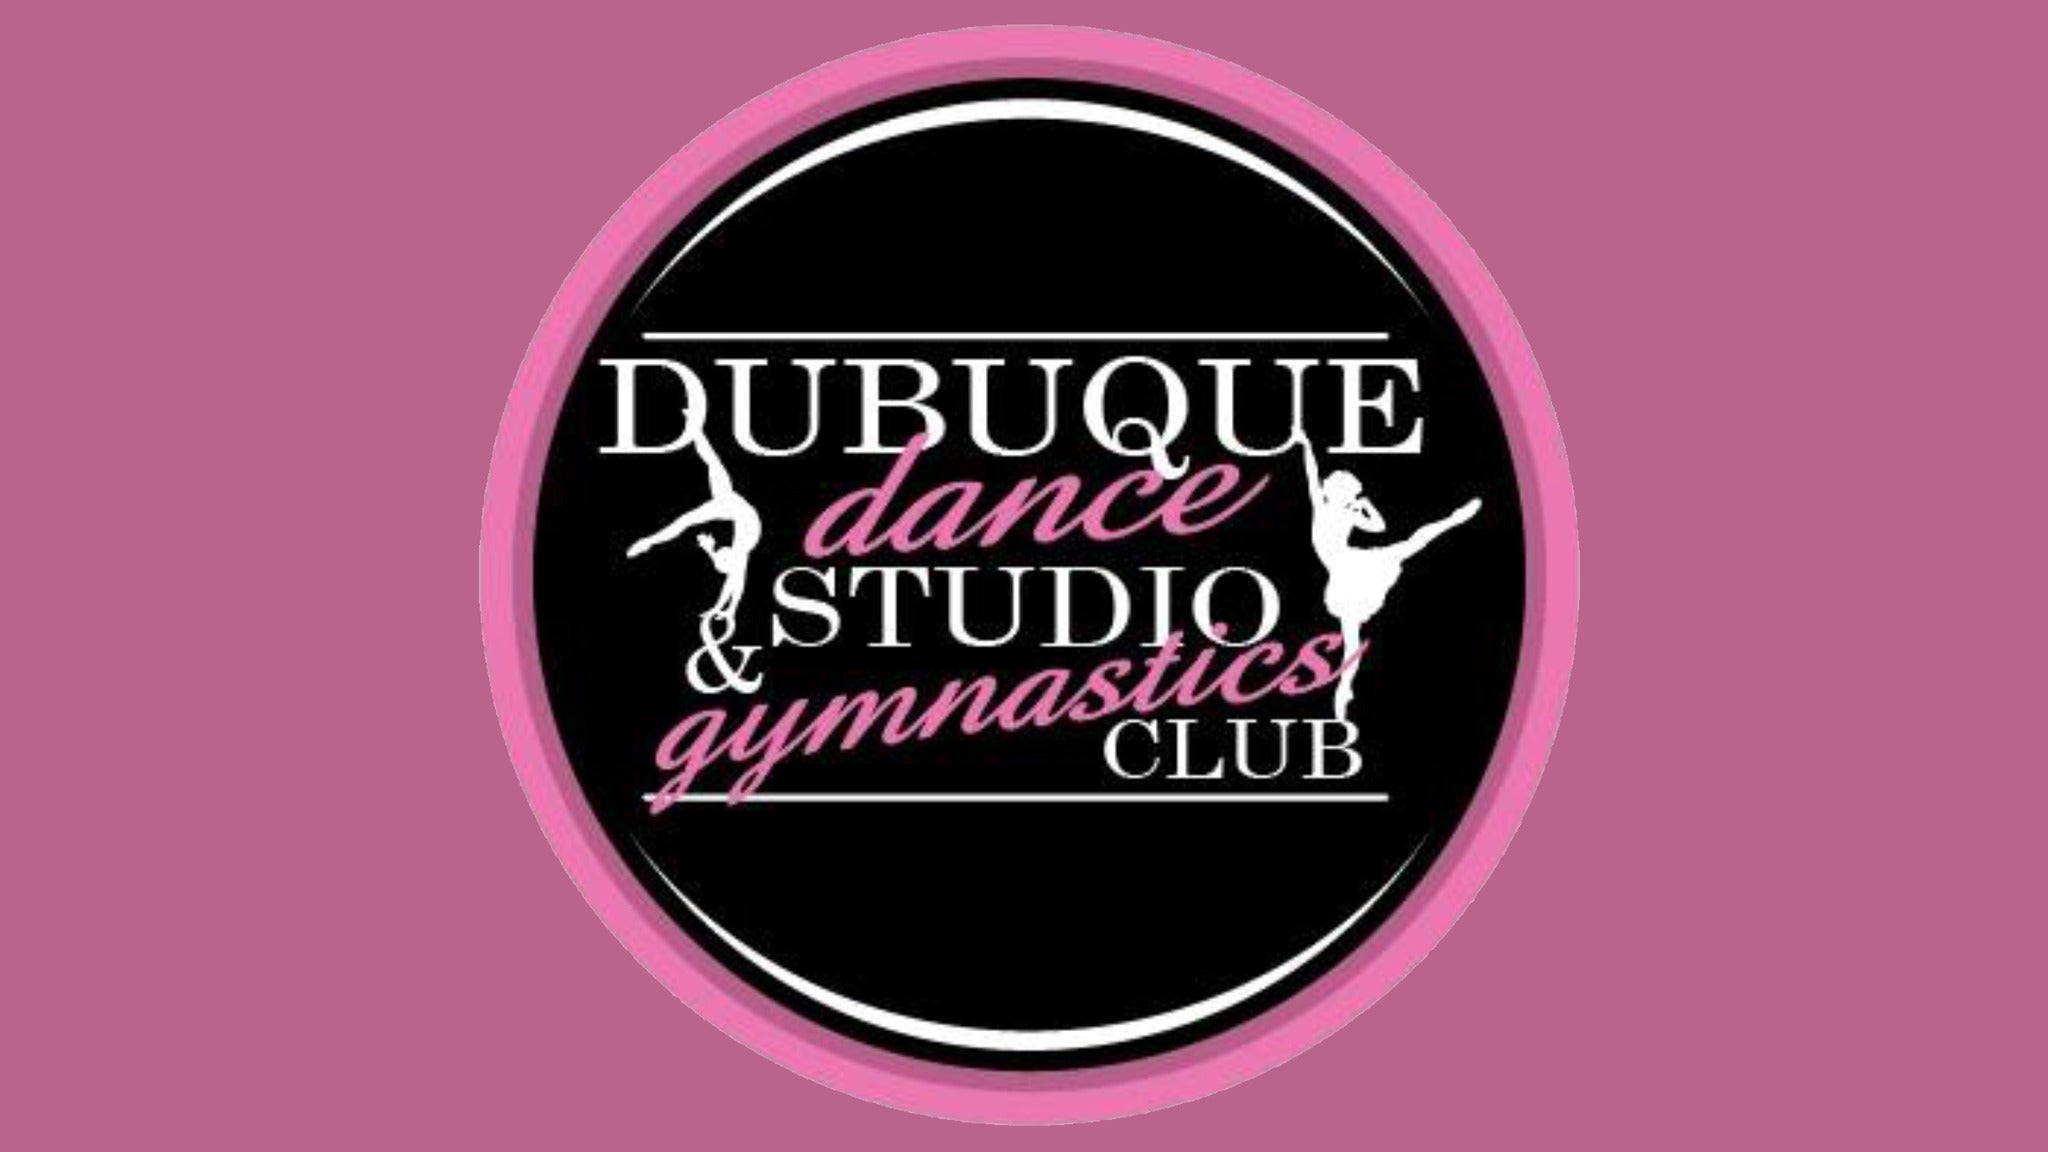 Dubuque Dance Studio at Five Flags Center